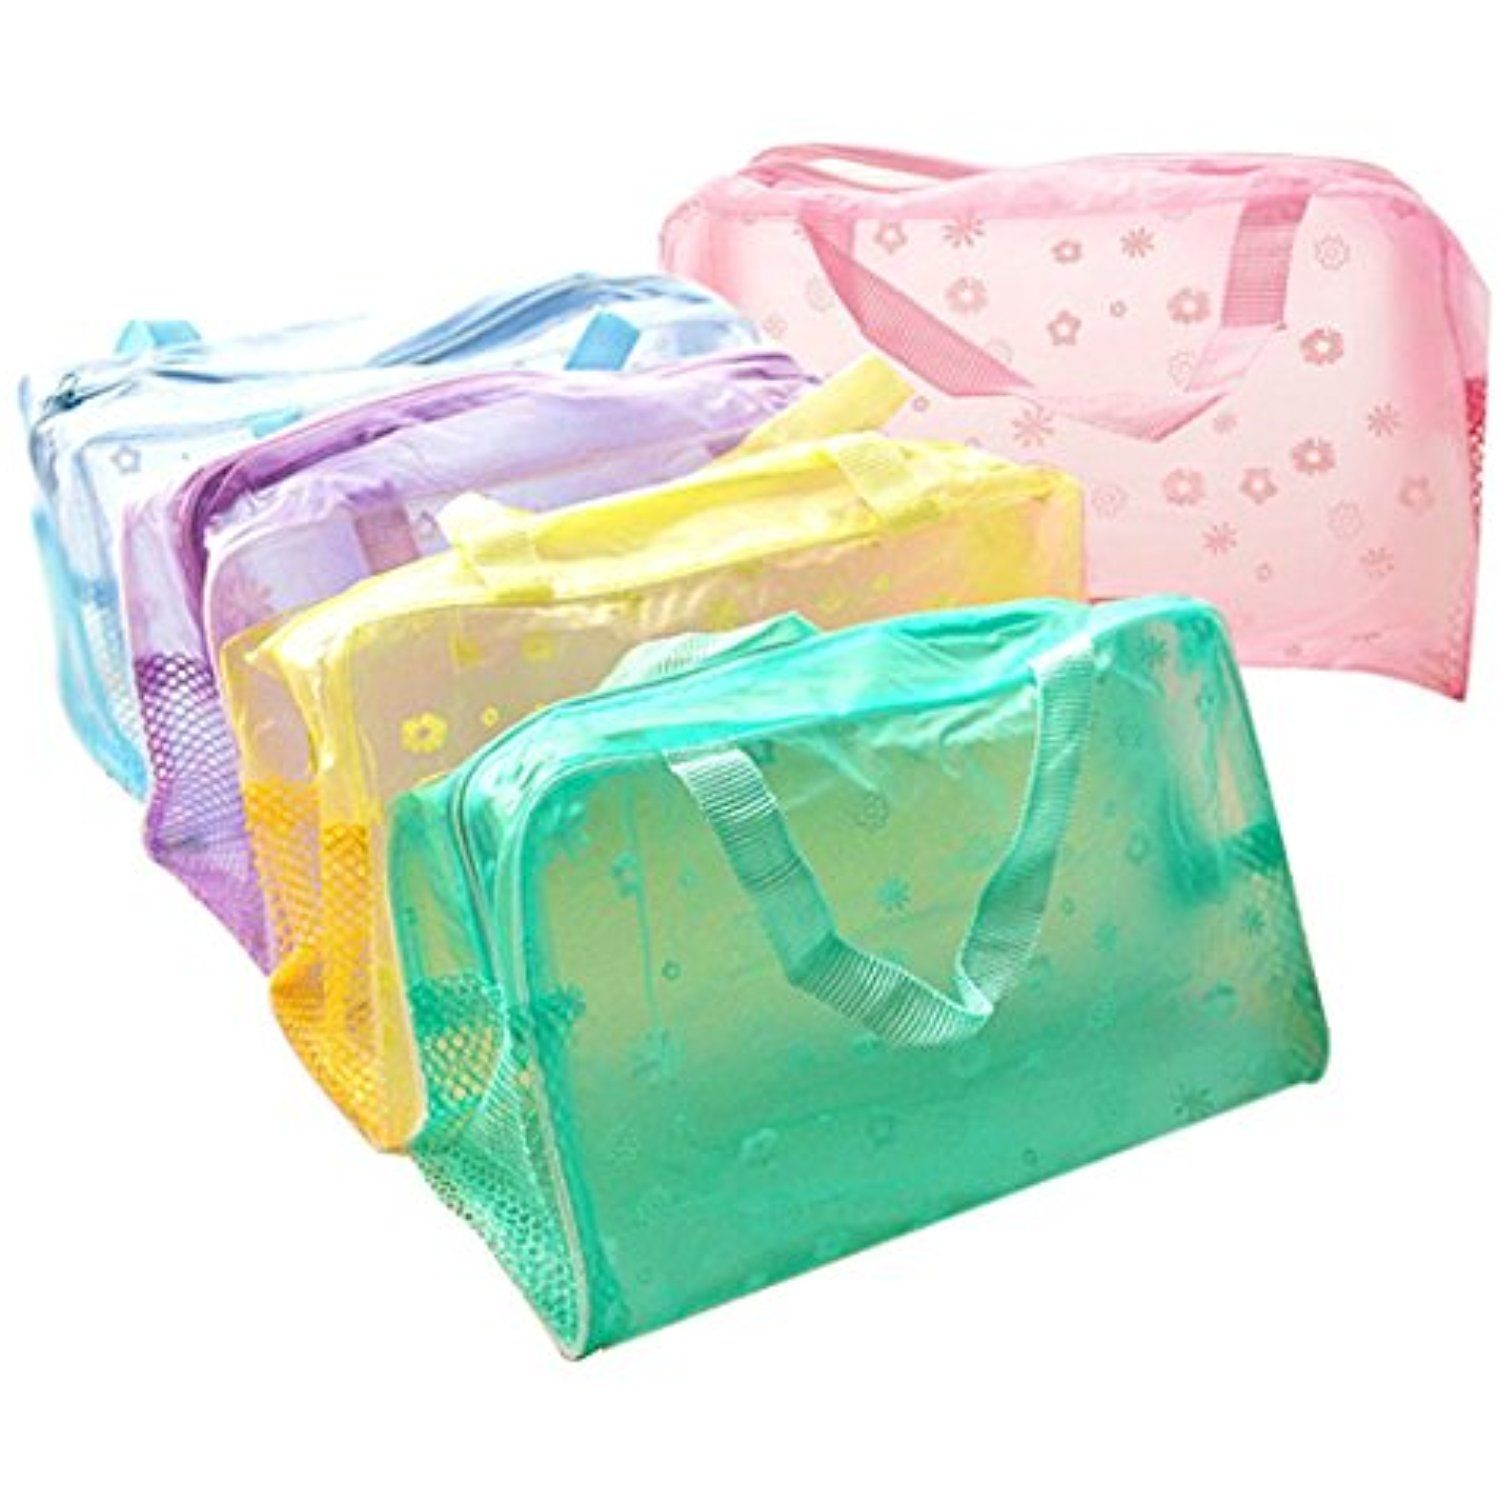 Sunward Women Waterproof Pvc Clear Storage Box Case Makeup Bag Travel Organizer Pouch 5 In 1 Bags Cheap Buy Quality Laundry Directly From China Suppliers Pcs Set Portable Colors Wash